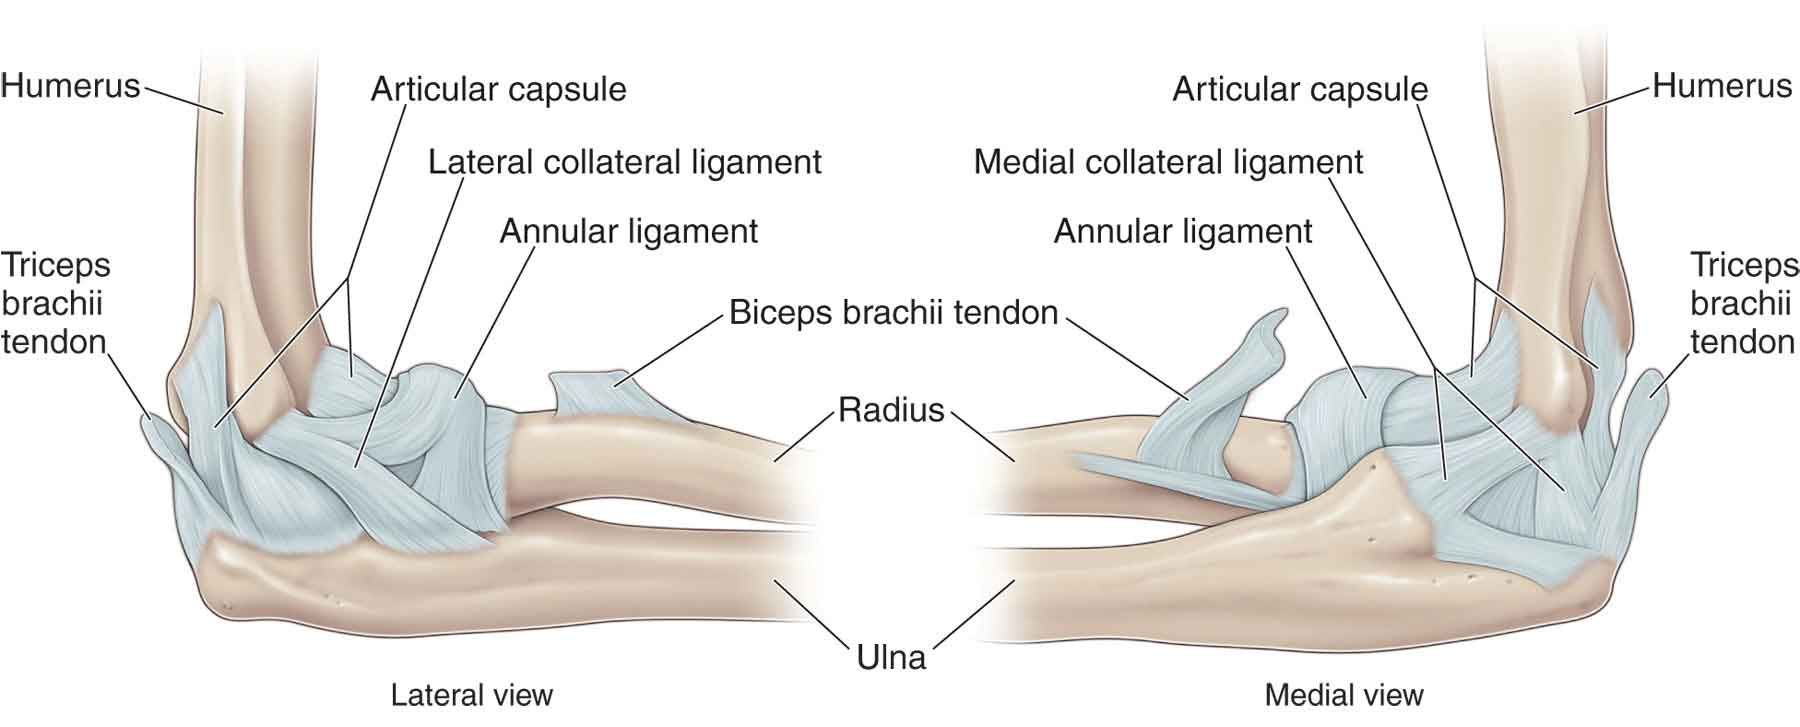 elbow joint ligaments - Google Search   Biceps brachii ...